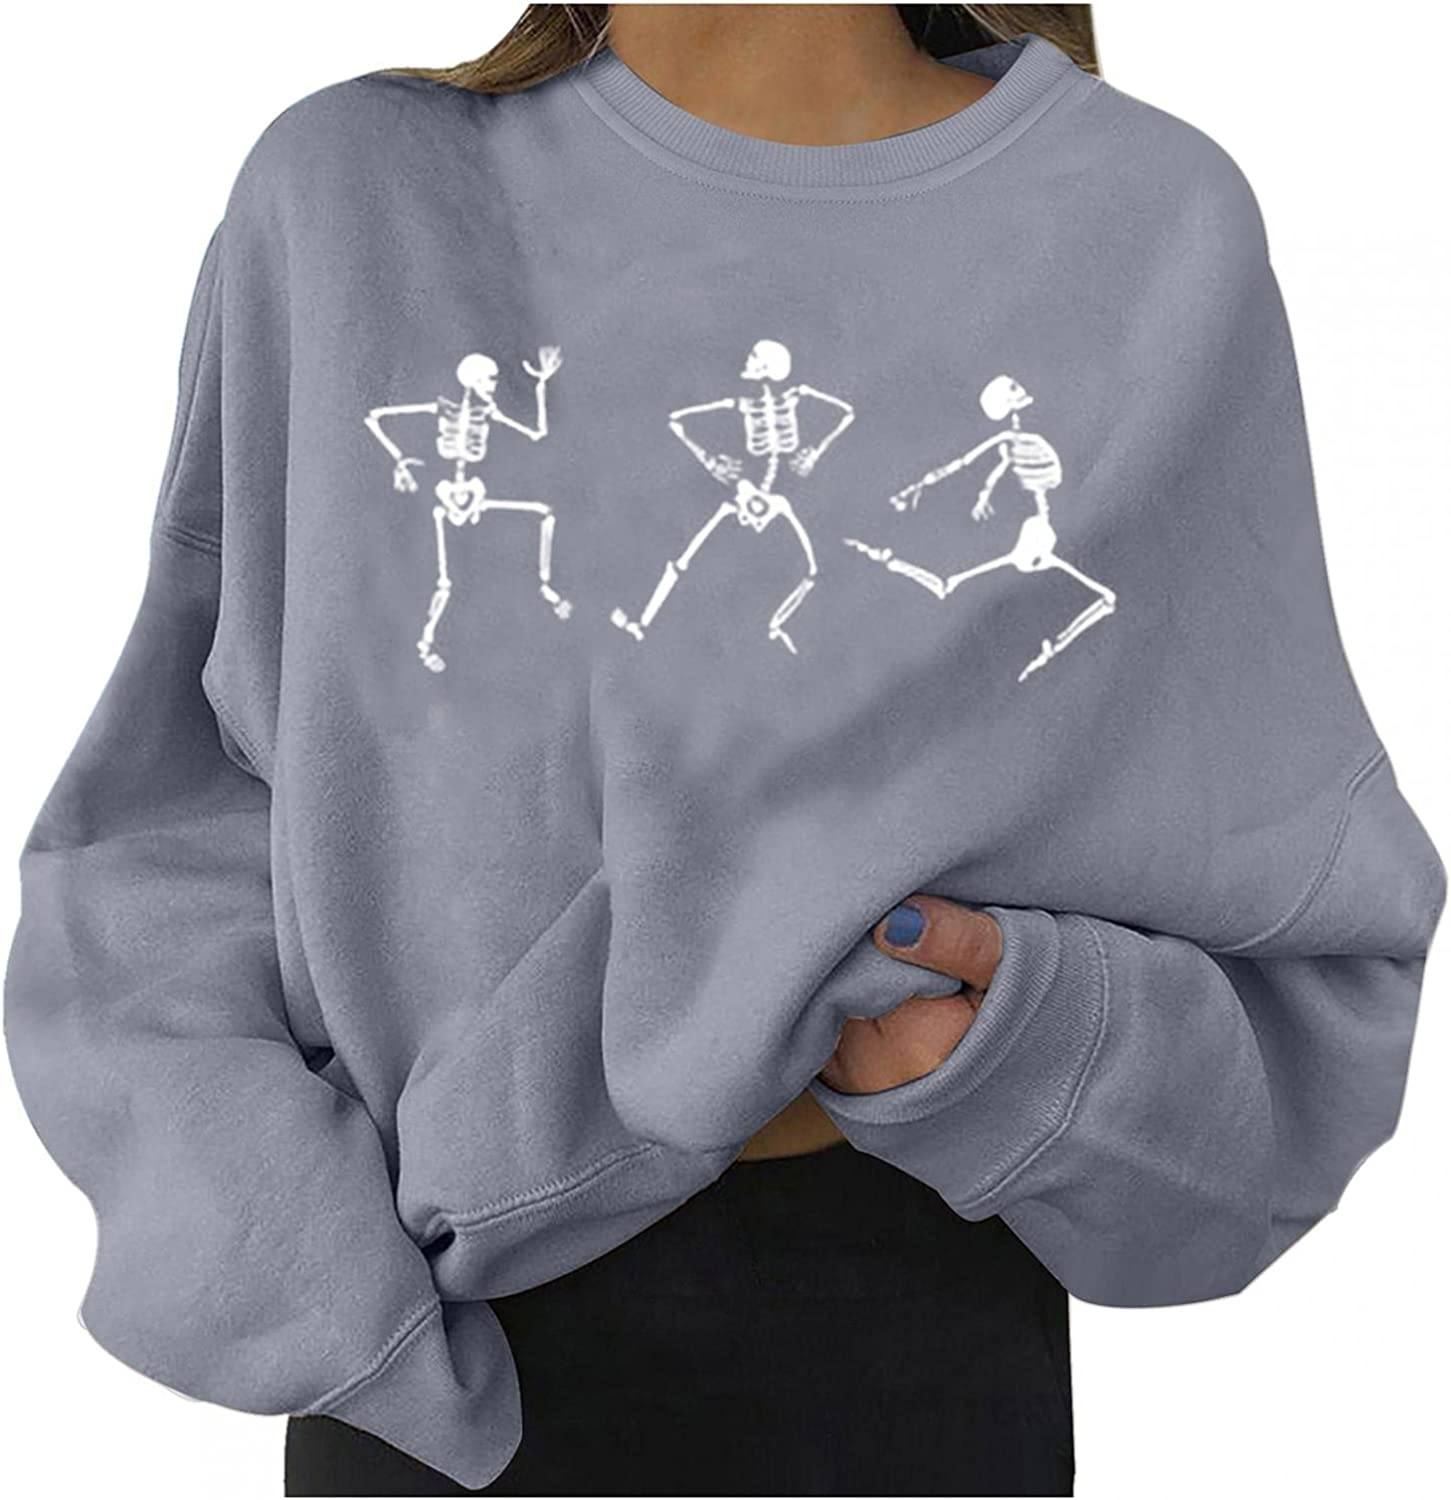 Halloween Sweaters for Women,Pumpkin Graphic Long Sleeve O Neck Pullover Tops Costumes Casual Loose Hoodies